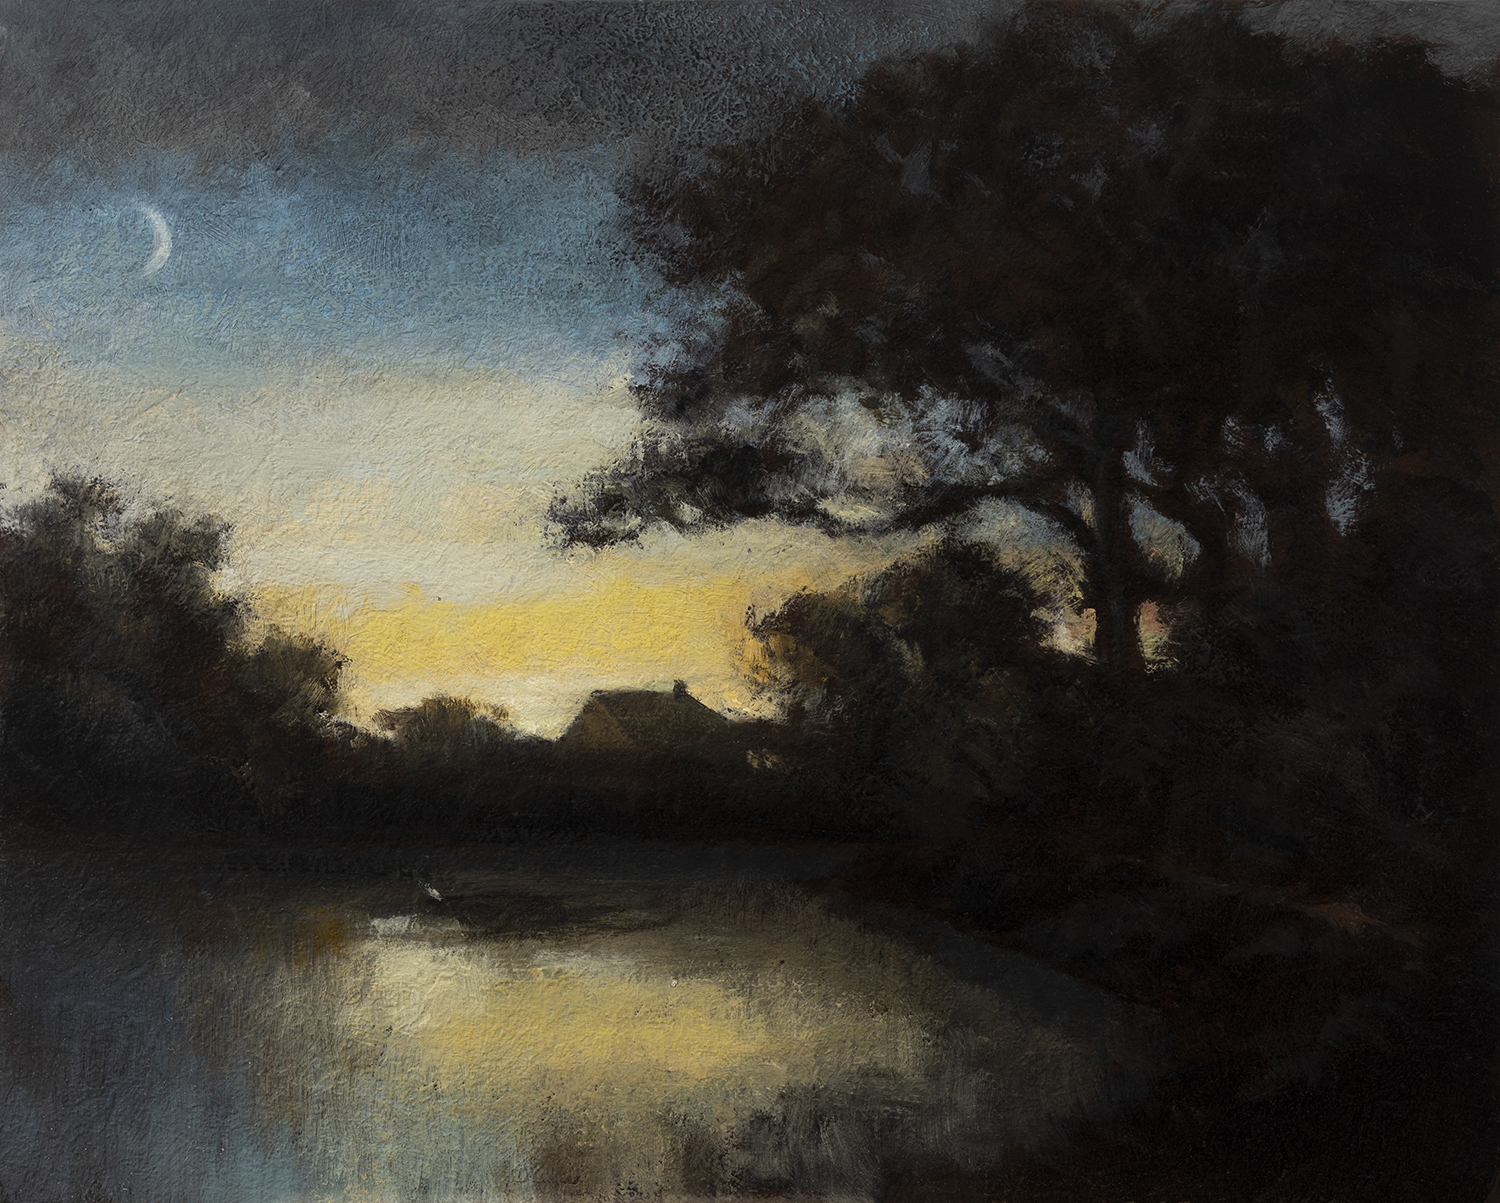 Study after: Alexander H Wyant - The Night by M Francis McCarthy - 8x10 Oil on Wood Panel